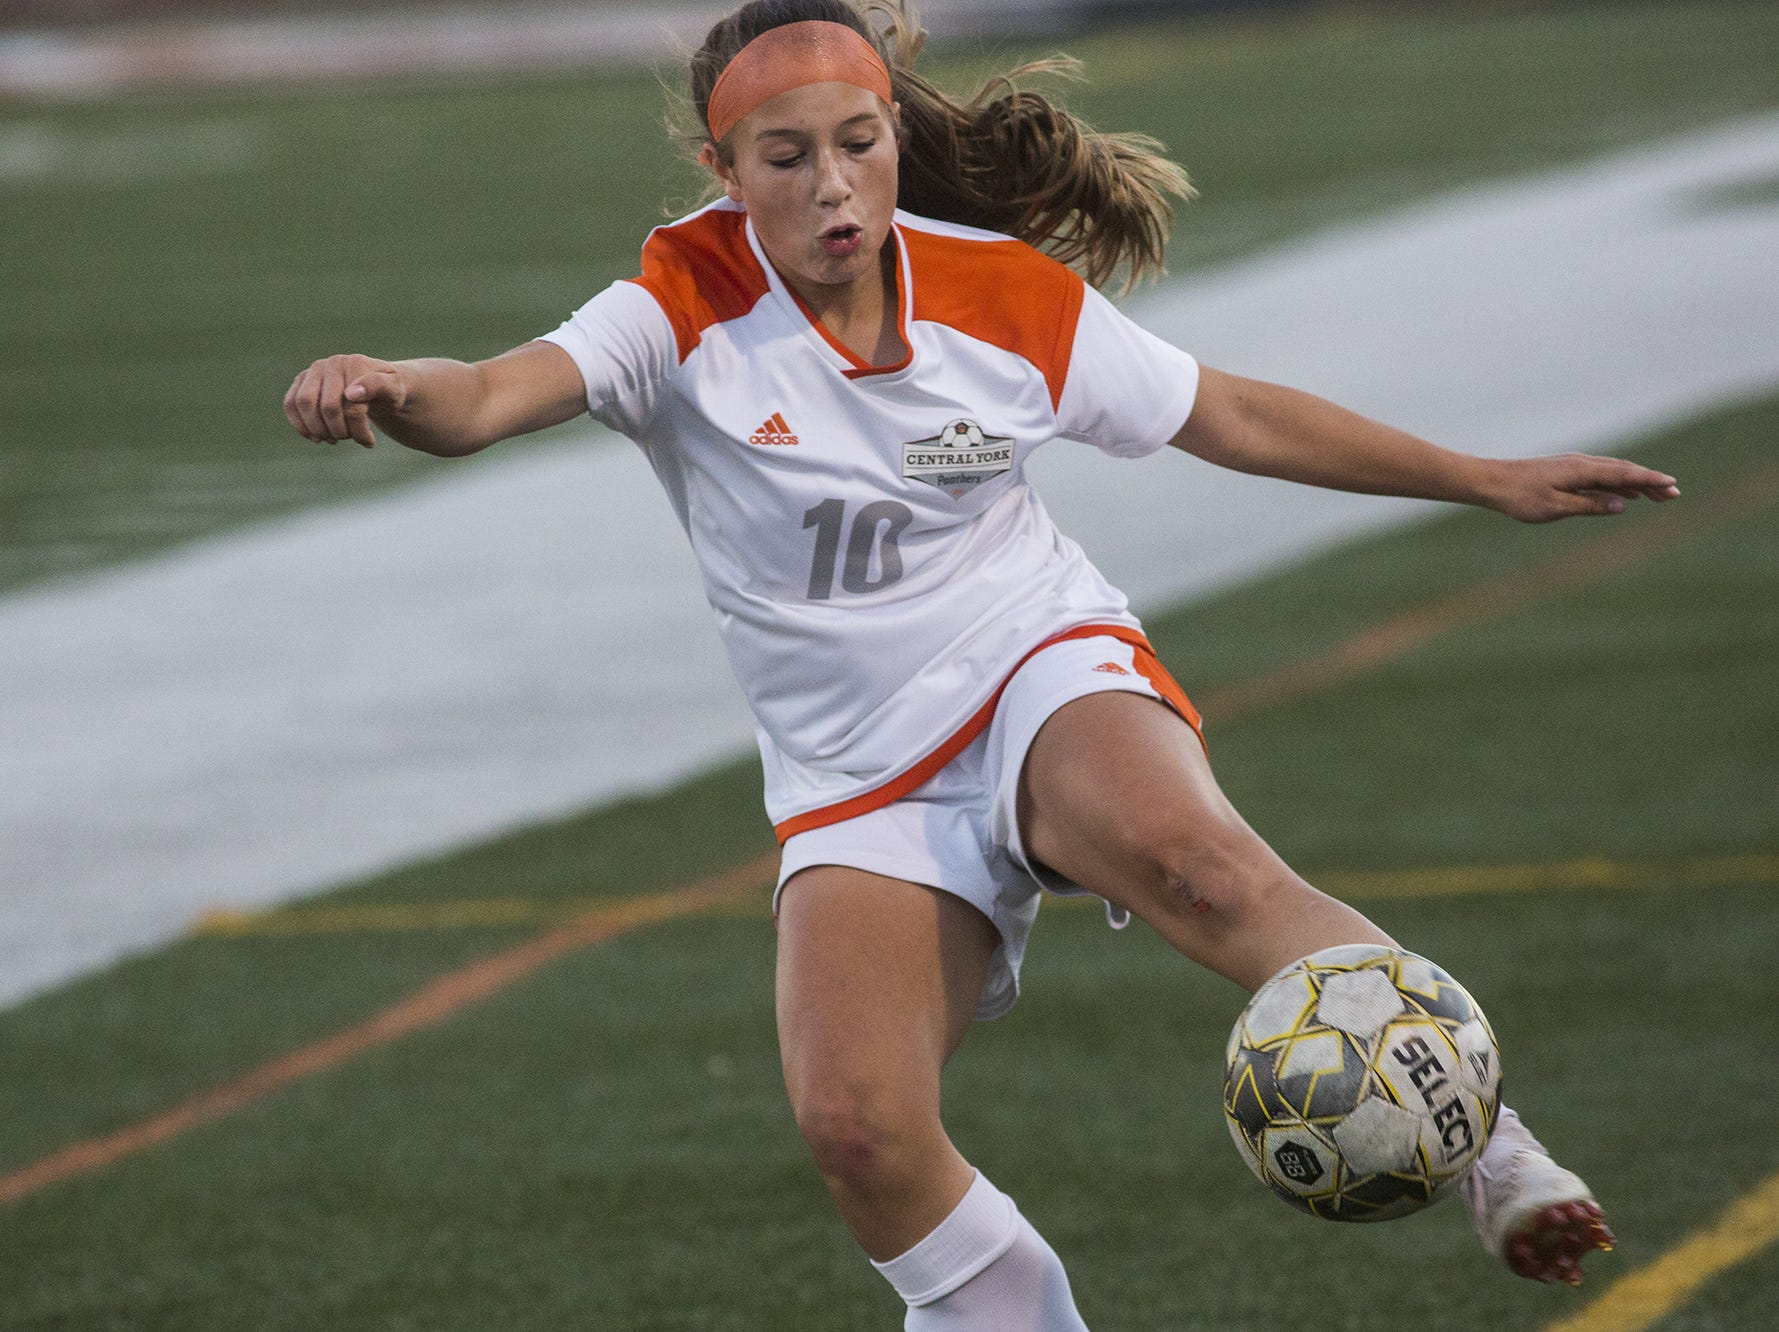 Central York's Ava Myers kicks the ball. Central York defeats Red Lion 1-0 in the YAIAA girls' soccer championship game at Northeastern High School in Manchester, Saturday, October 20, 2018.